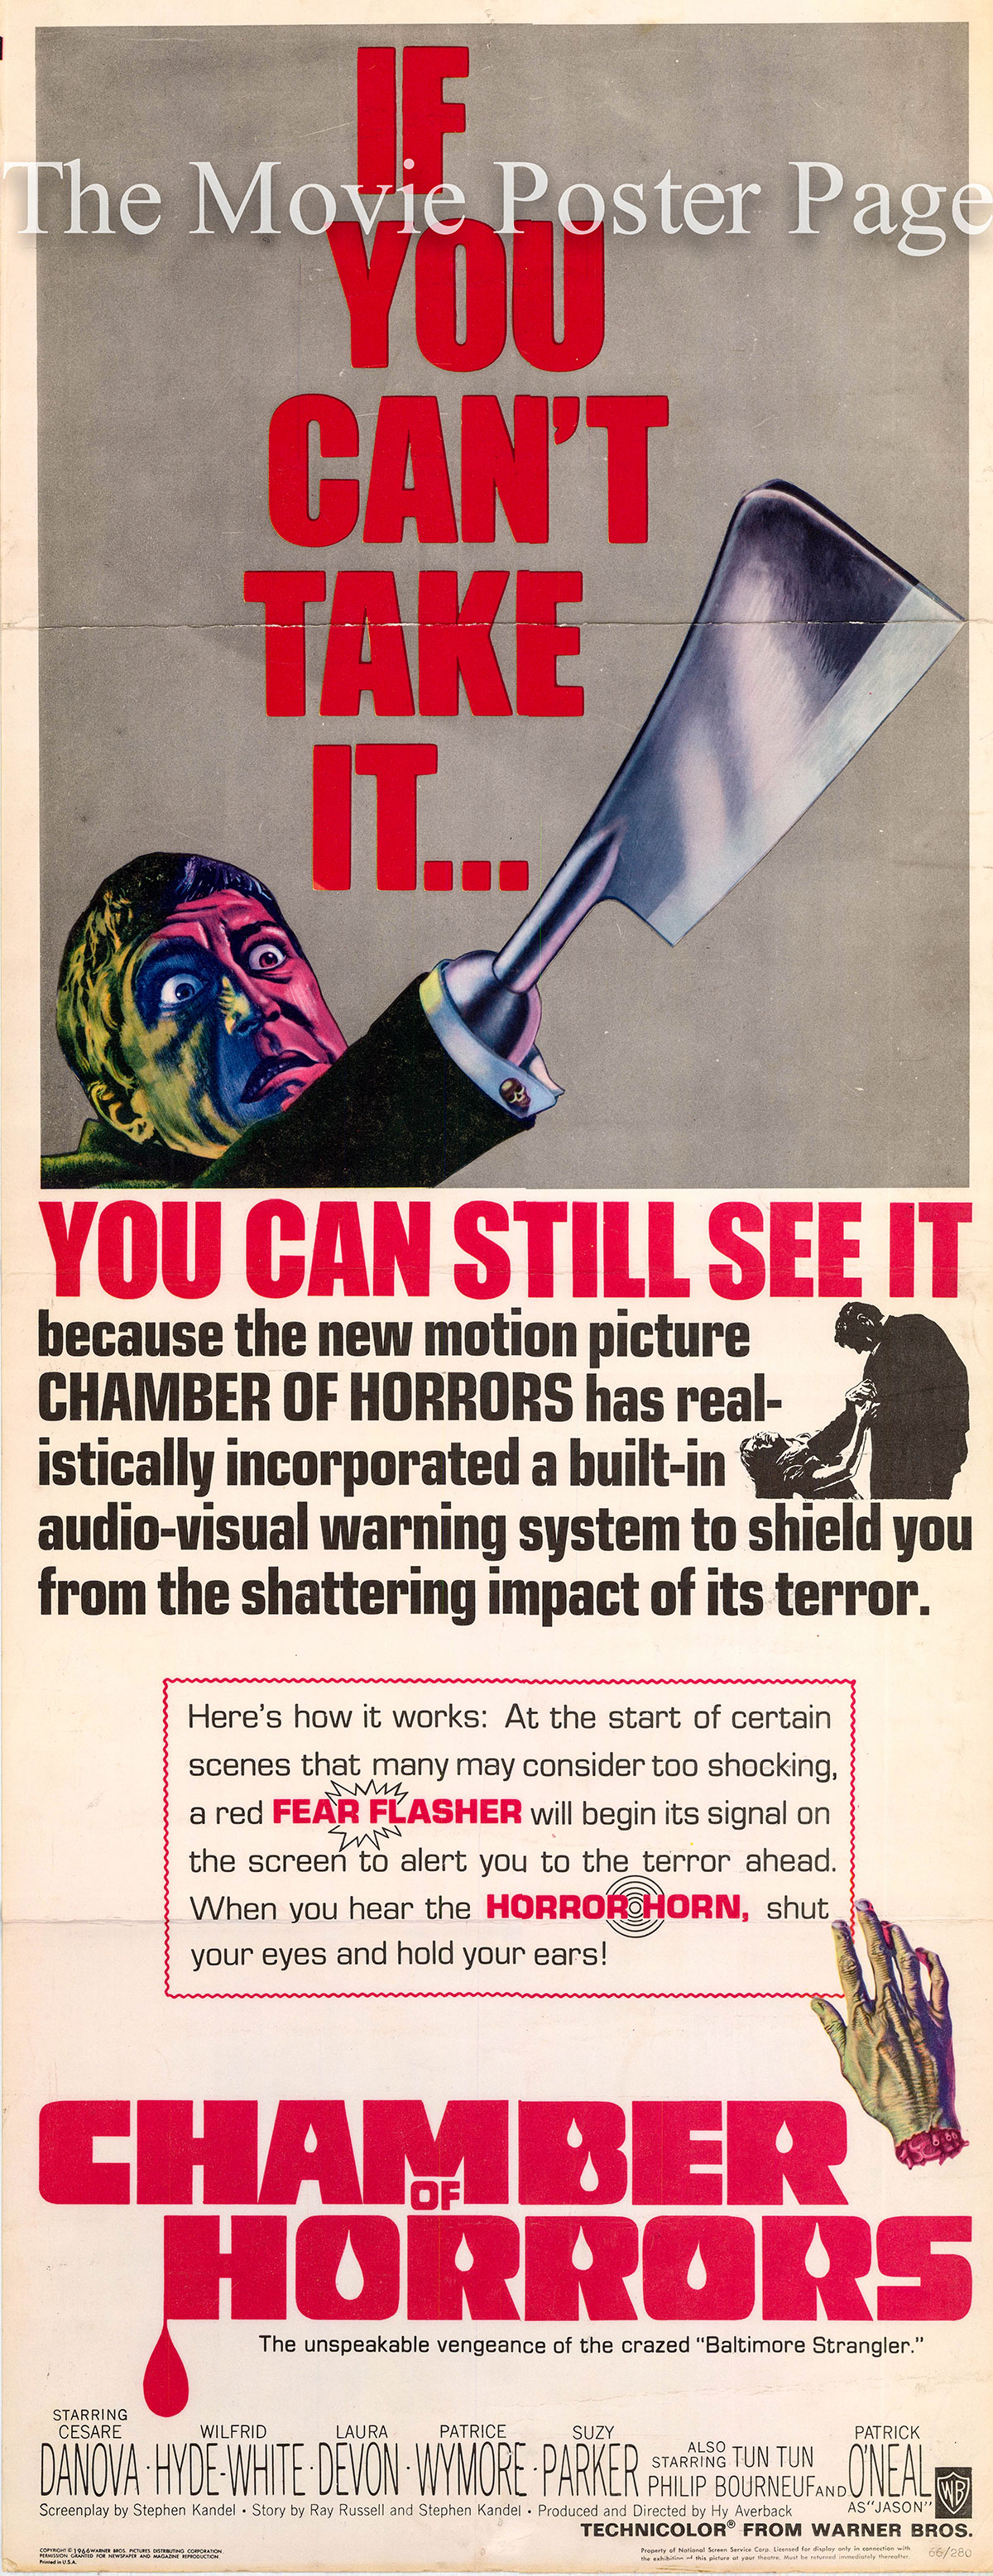 This is a US insert poster for the3 1966 Hy Averback film Chamber of Horrors starring Patrick O'Neal as Jason Cravatte.